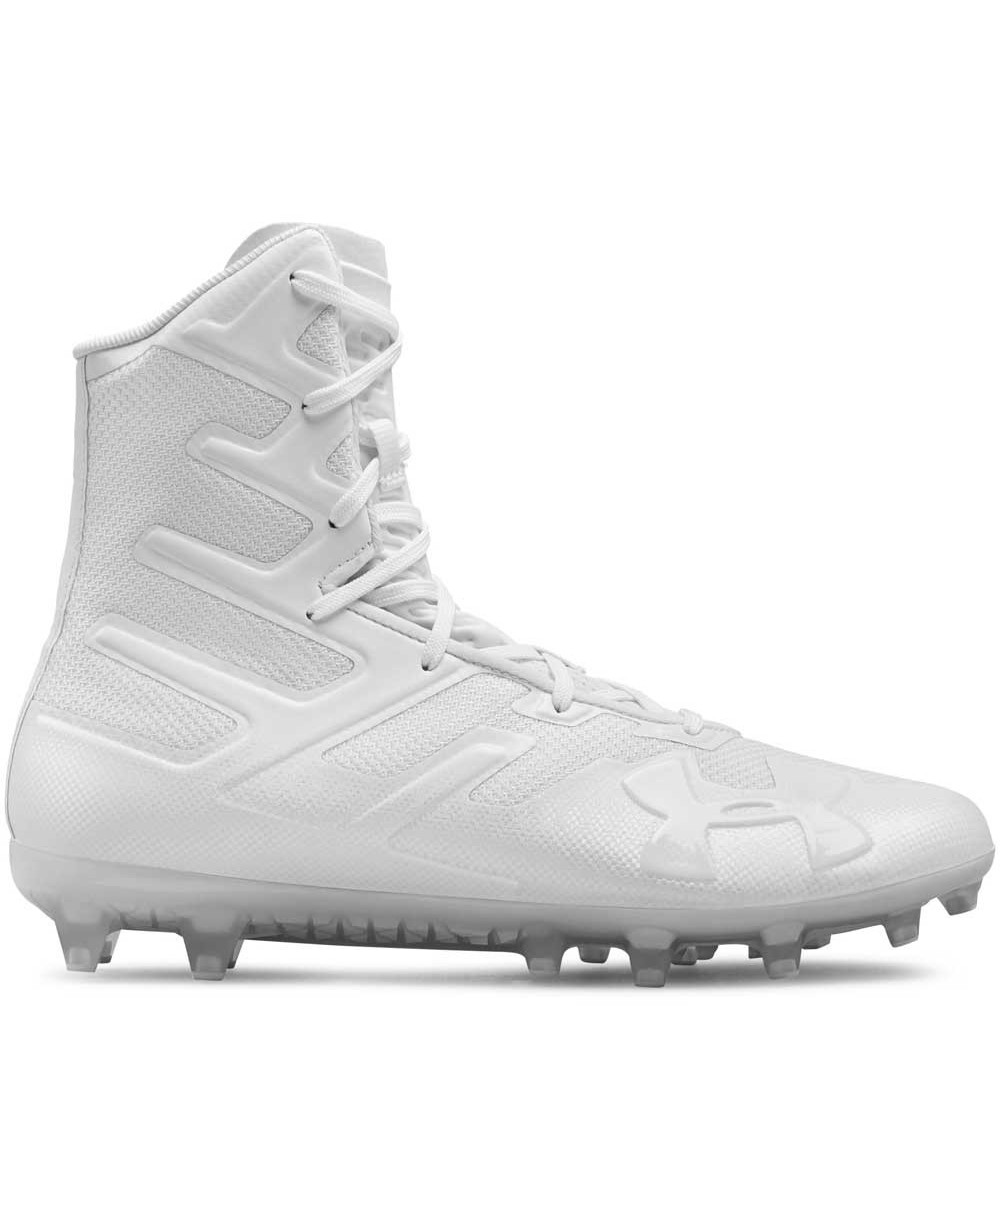 5797d37ef6f9 Under Armour Men's Highlight MC Football Cleats. FINAL CLEARANCE